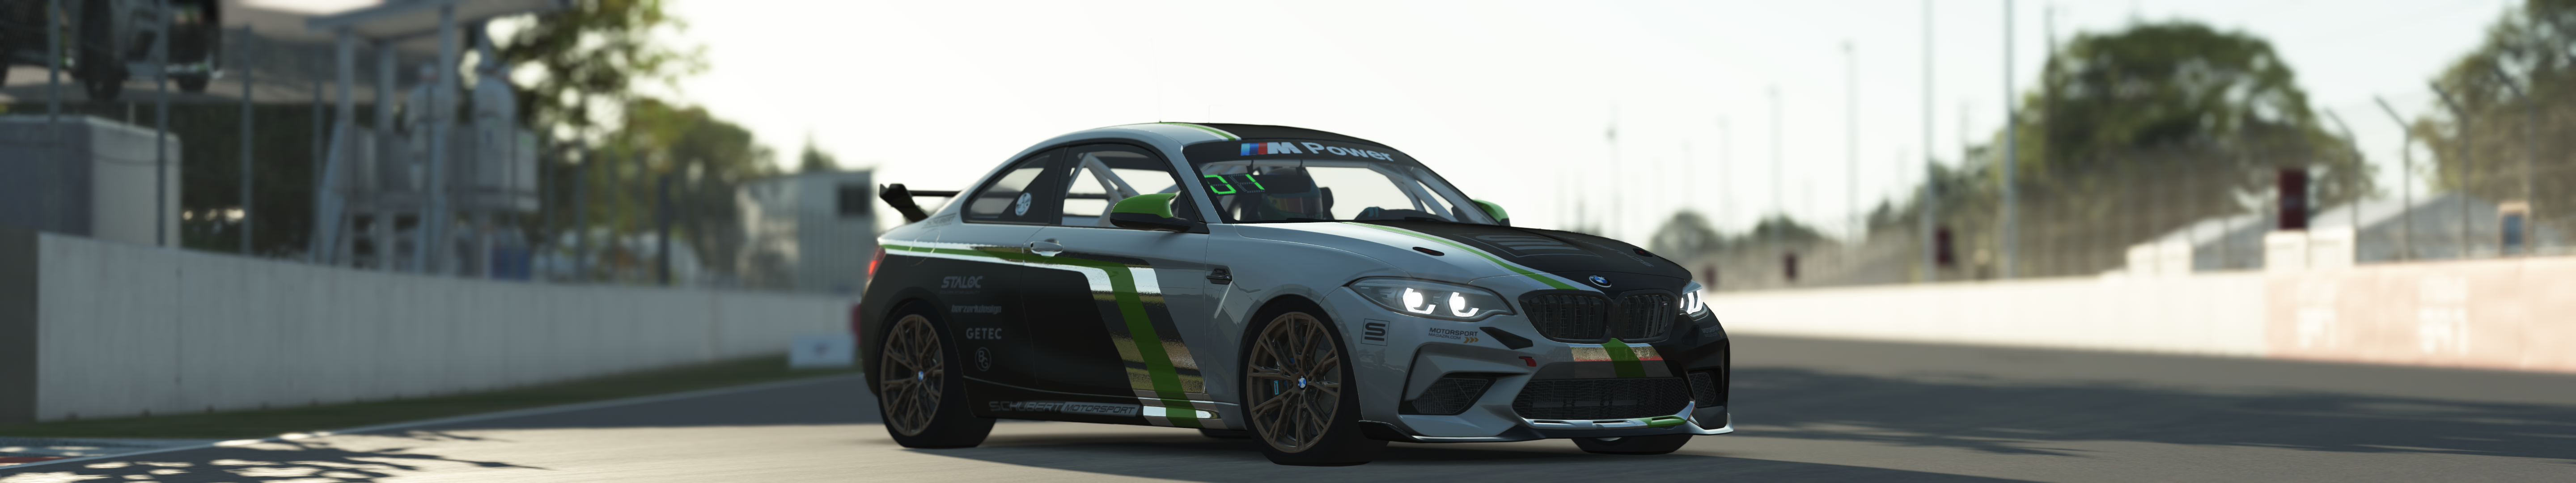 rFactor2 2020-06-26 23-01-25-32.png